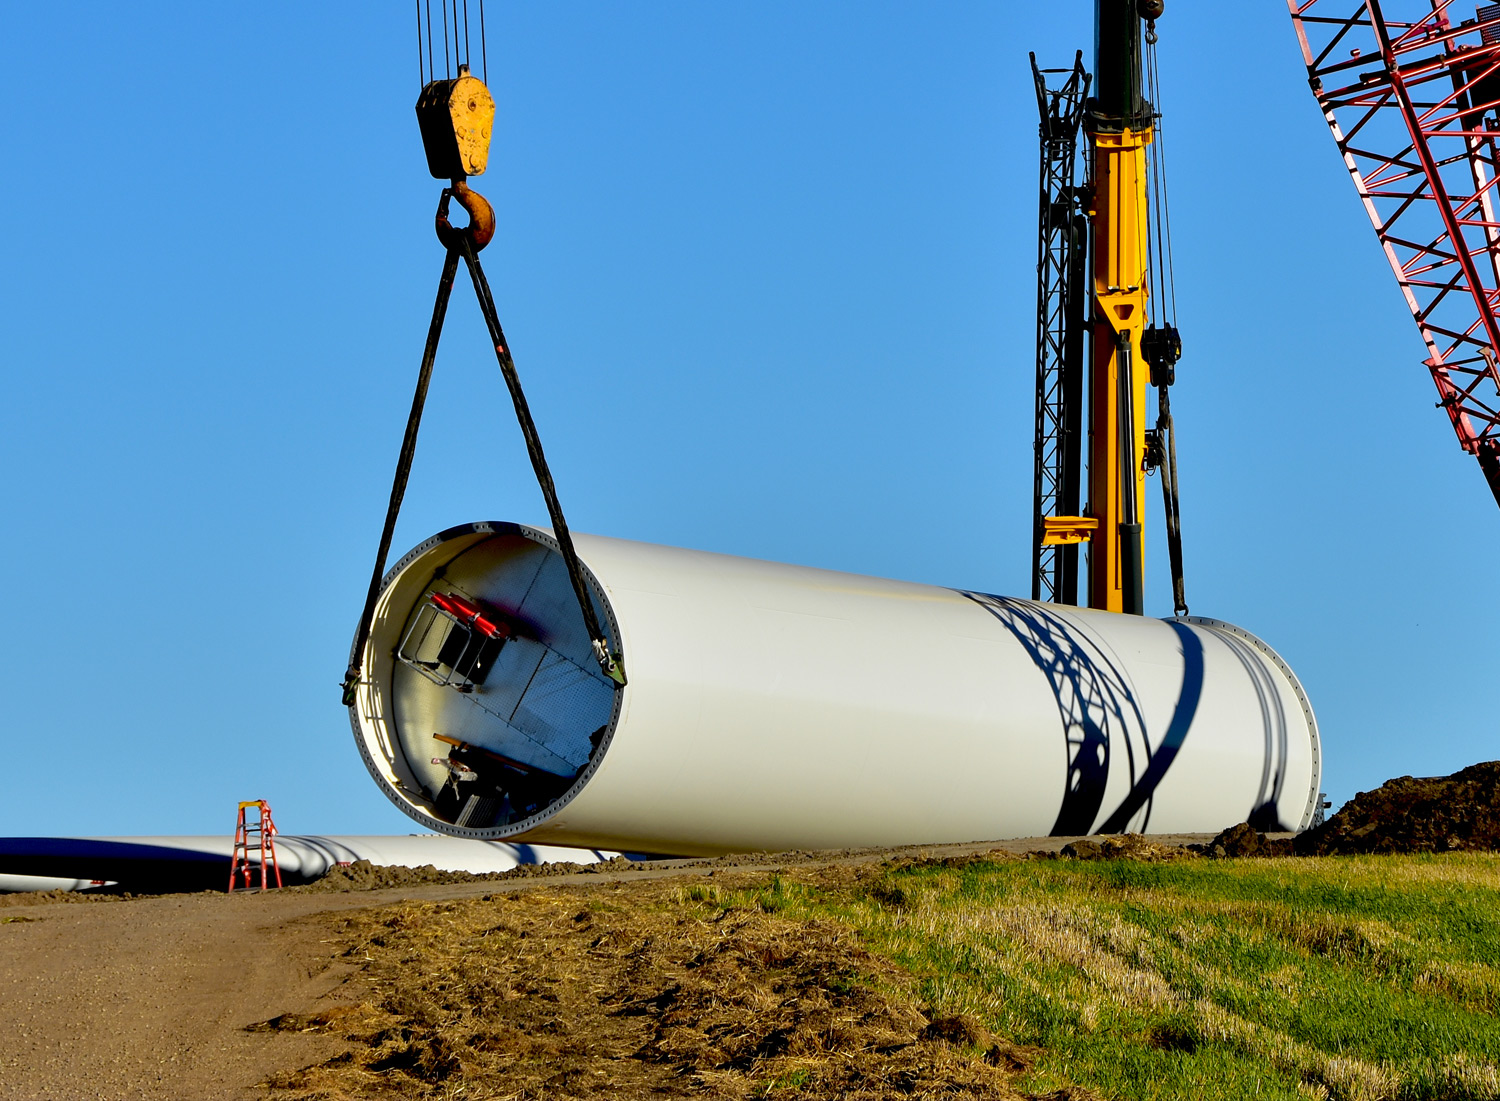 Project to improve handling operations of nacelle G114 in multimodal transport